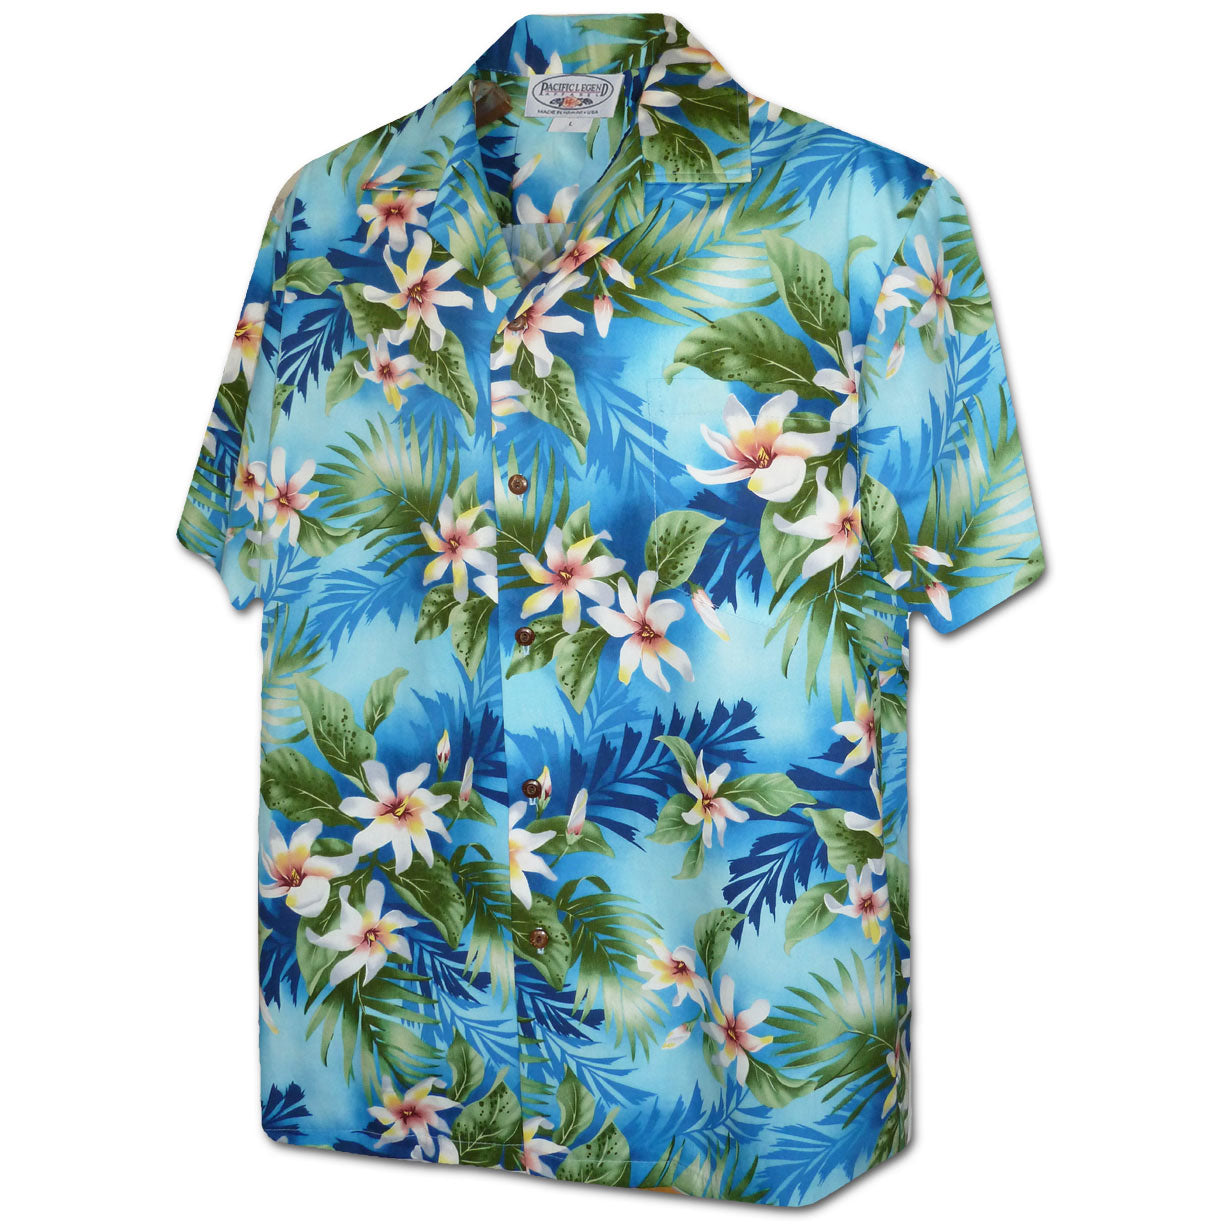 Vibrant Flower Blue Hawaiian Shirt